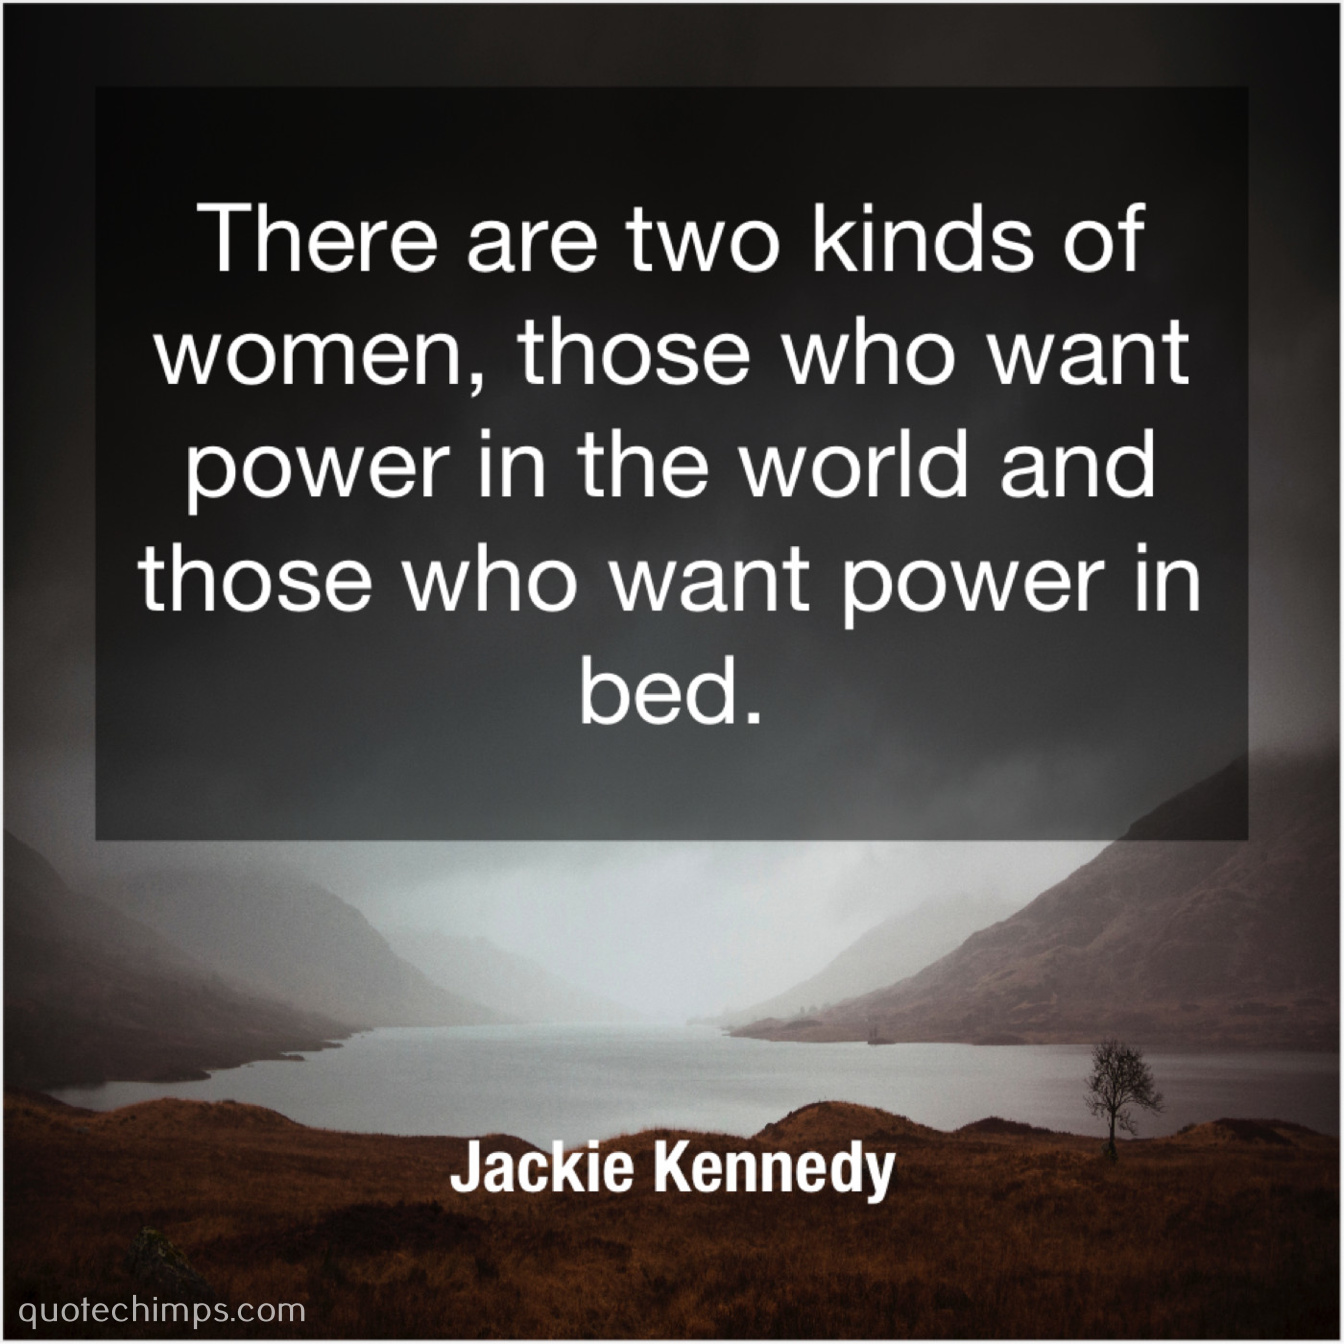 Jackie Kennedy – Quote Chimps